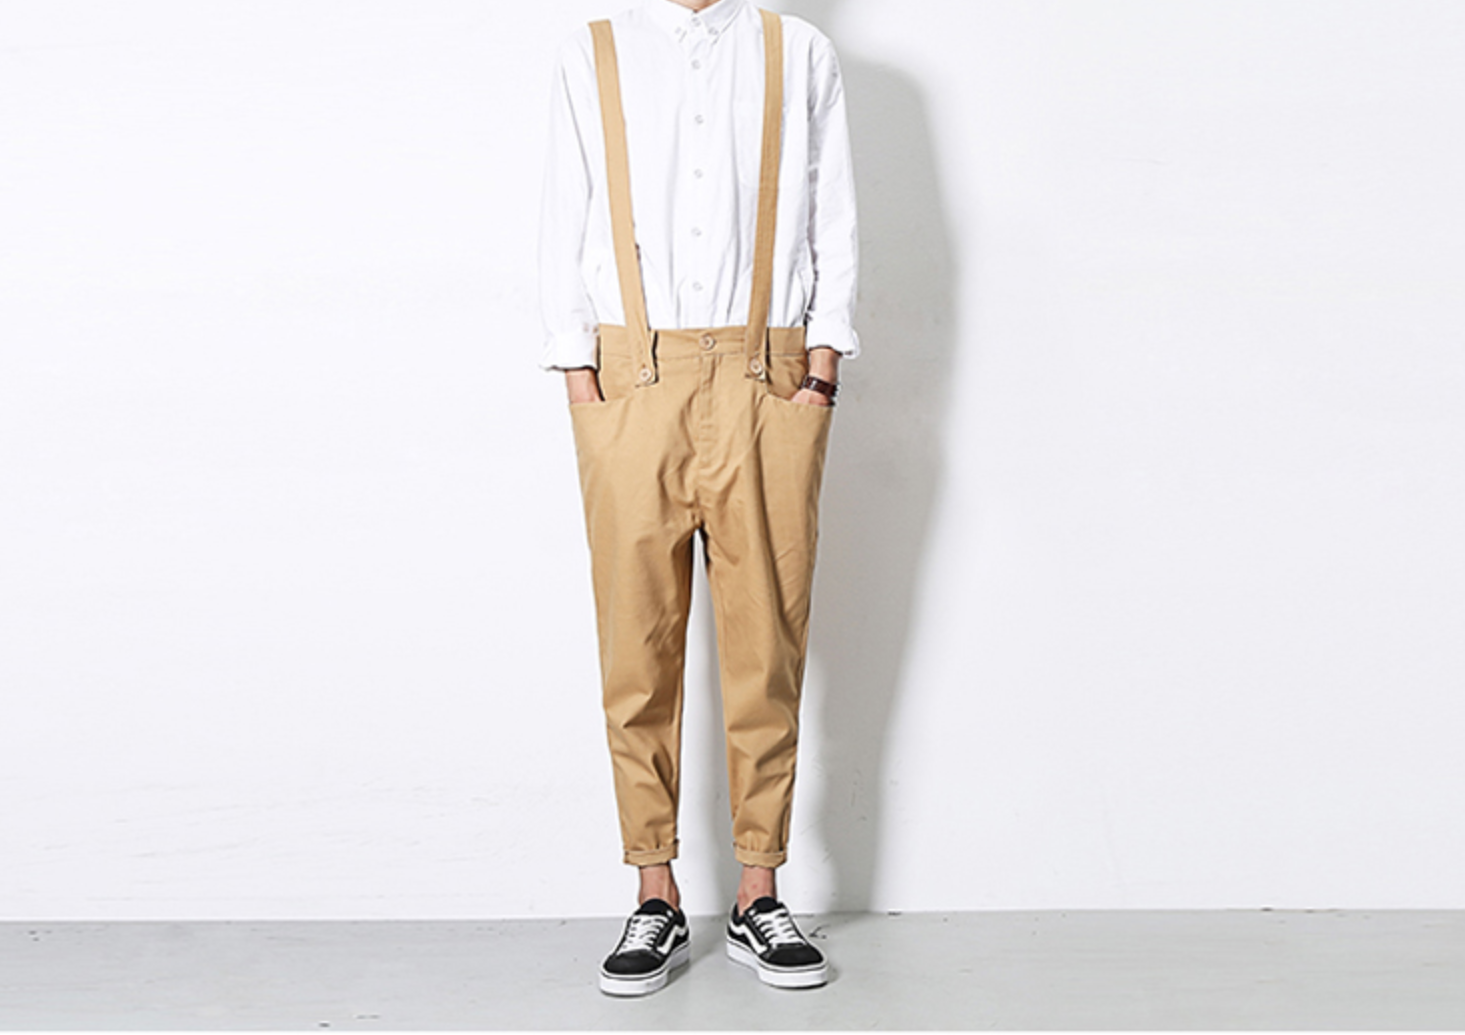 Jumpsuit New Summer Autumn Casual/  Ropa Coreana Hombre